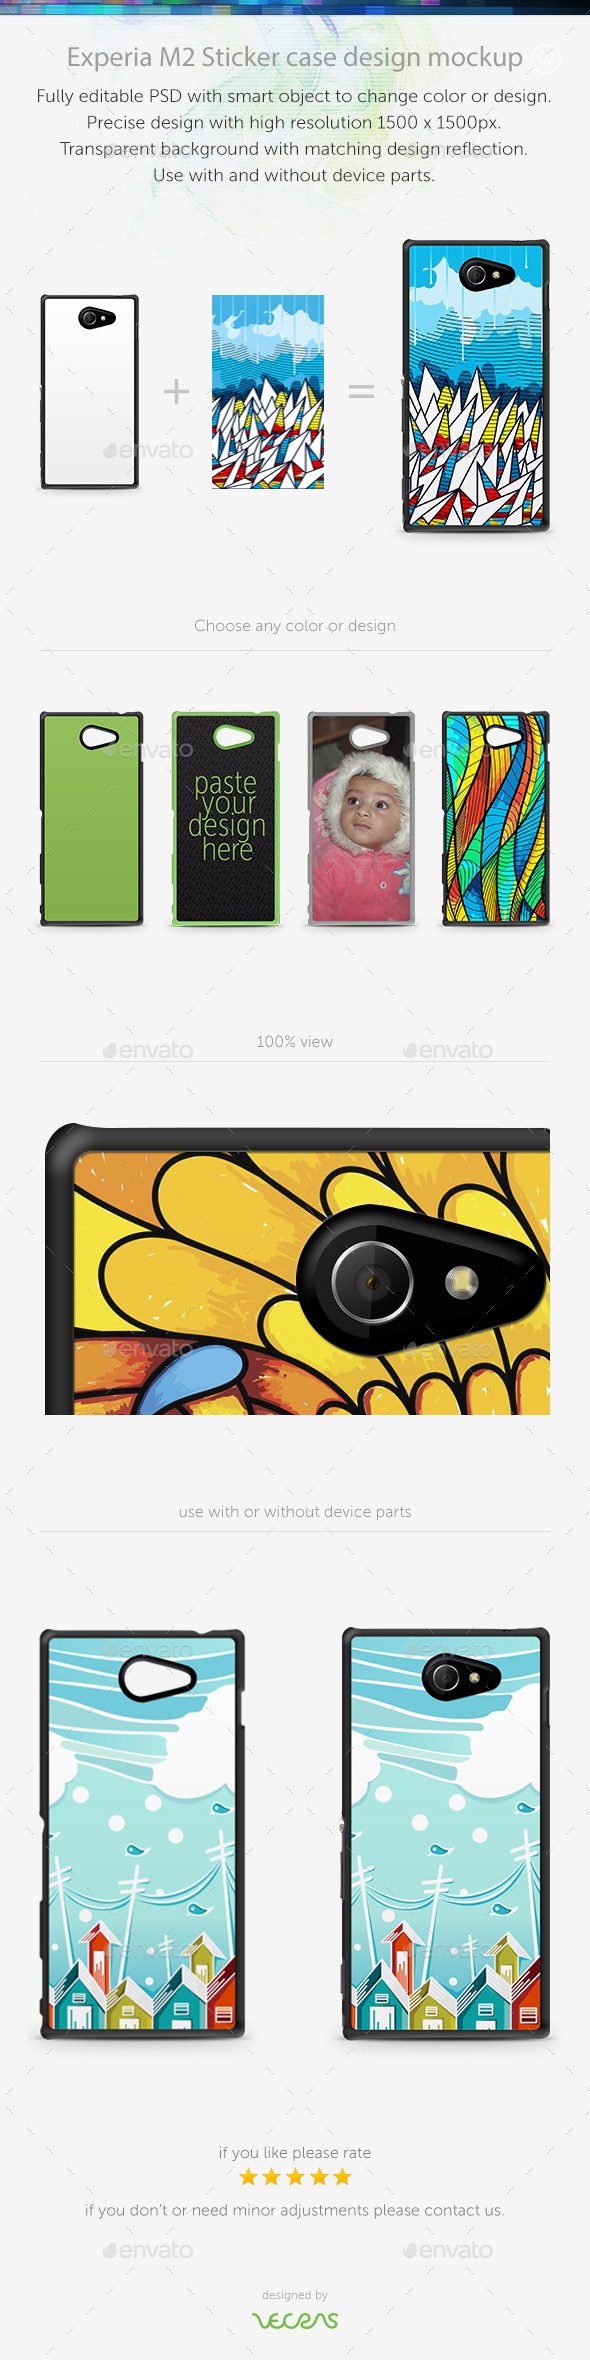 GraphicRiver Experia M2 Sticker Case Design Mockup 10832685